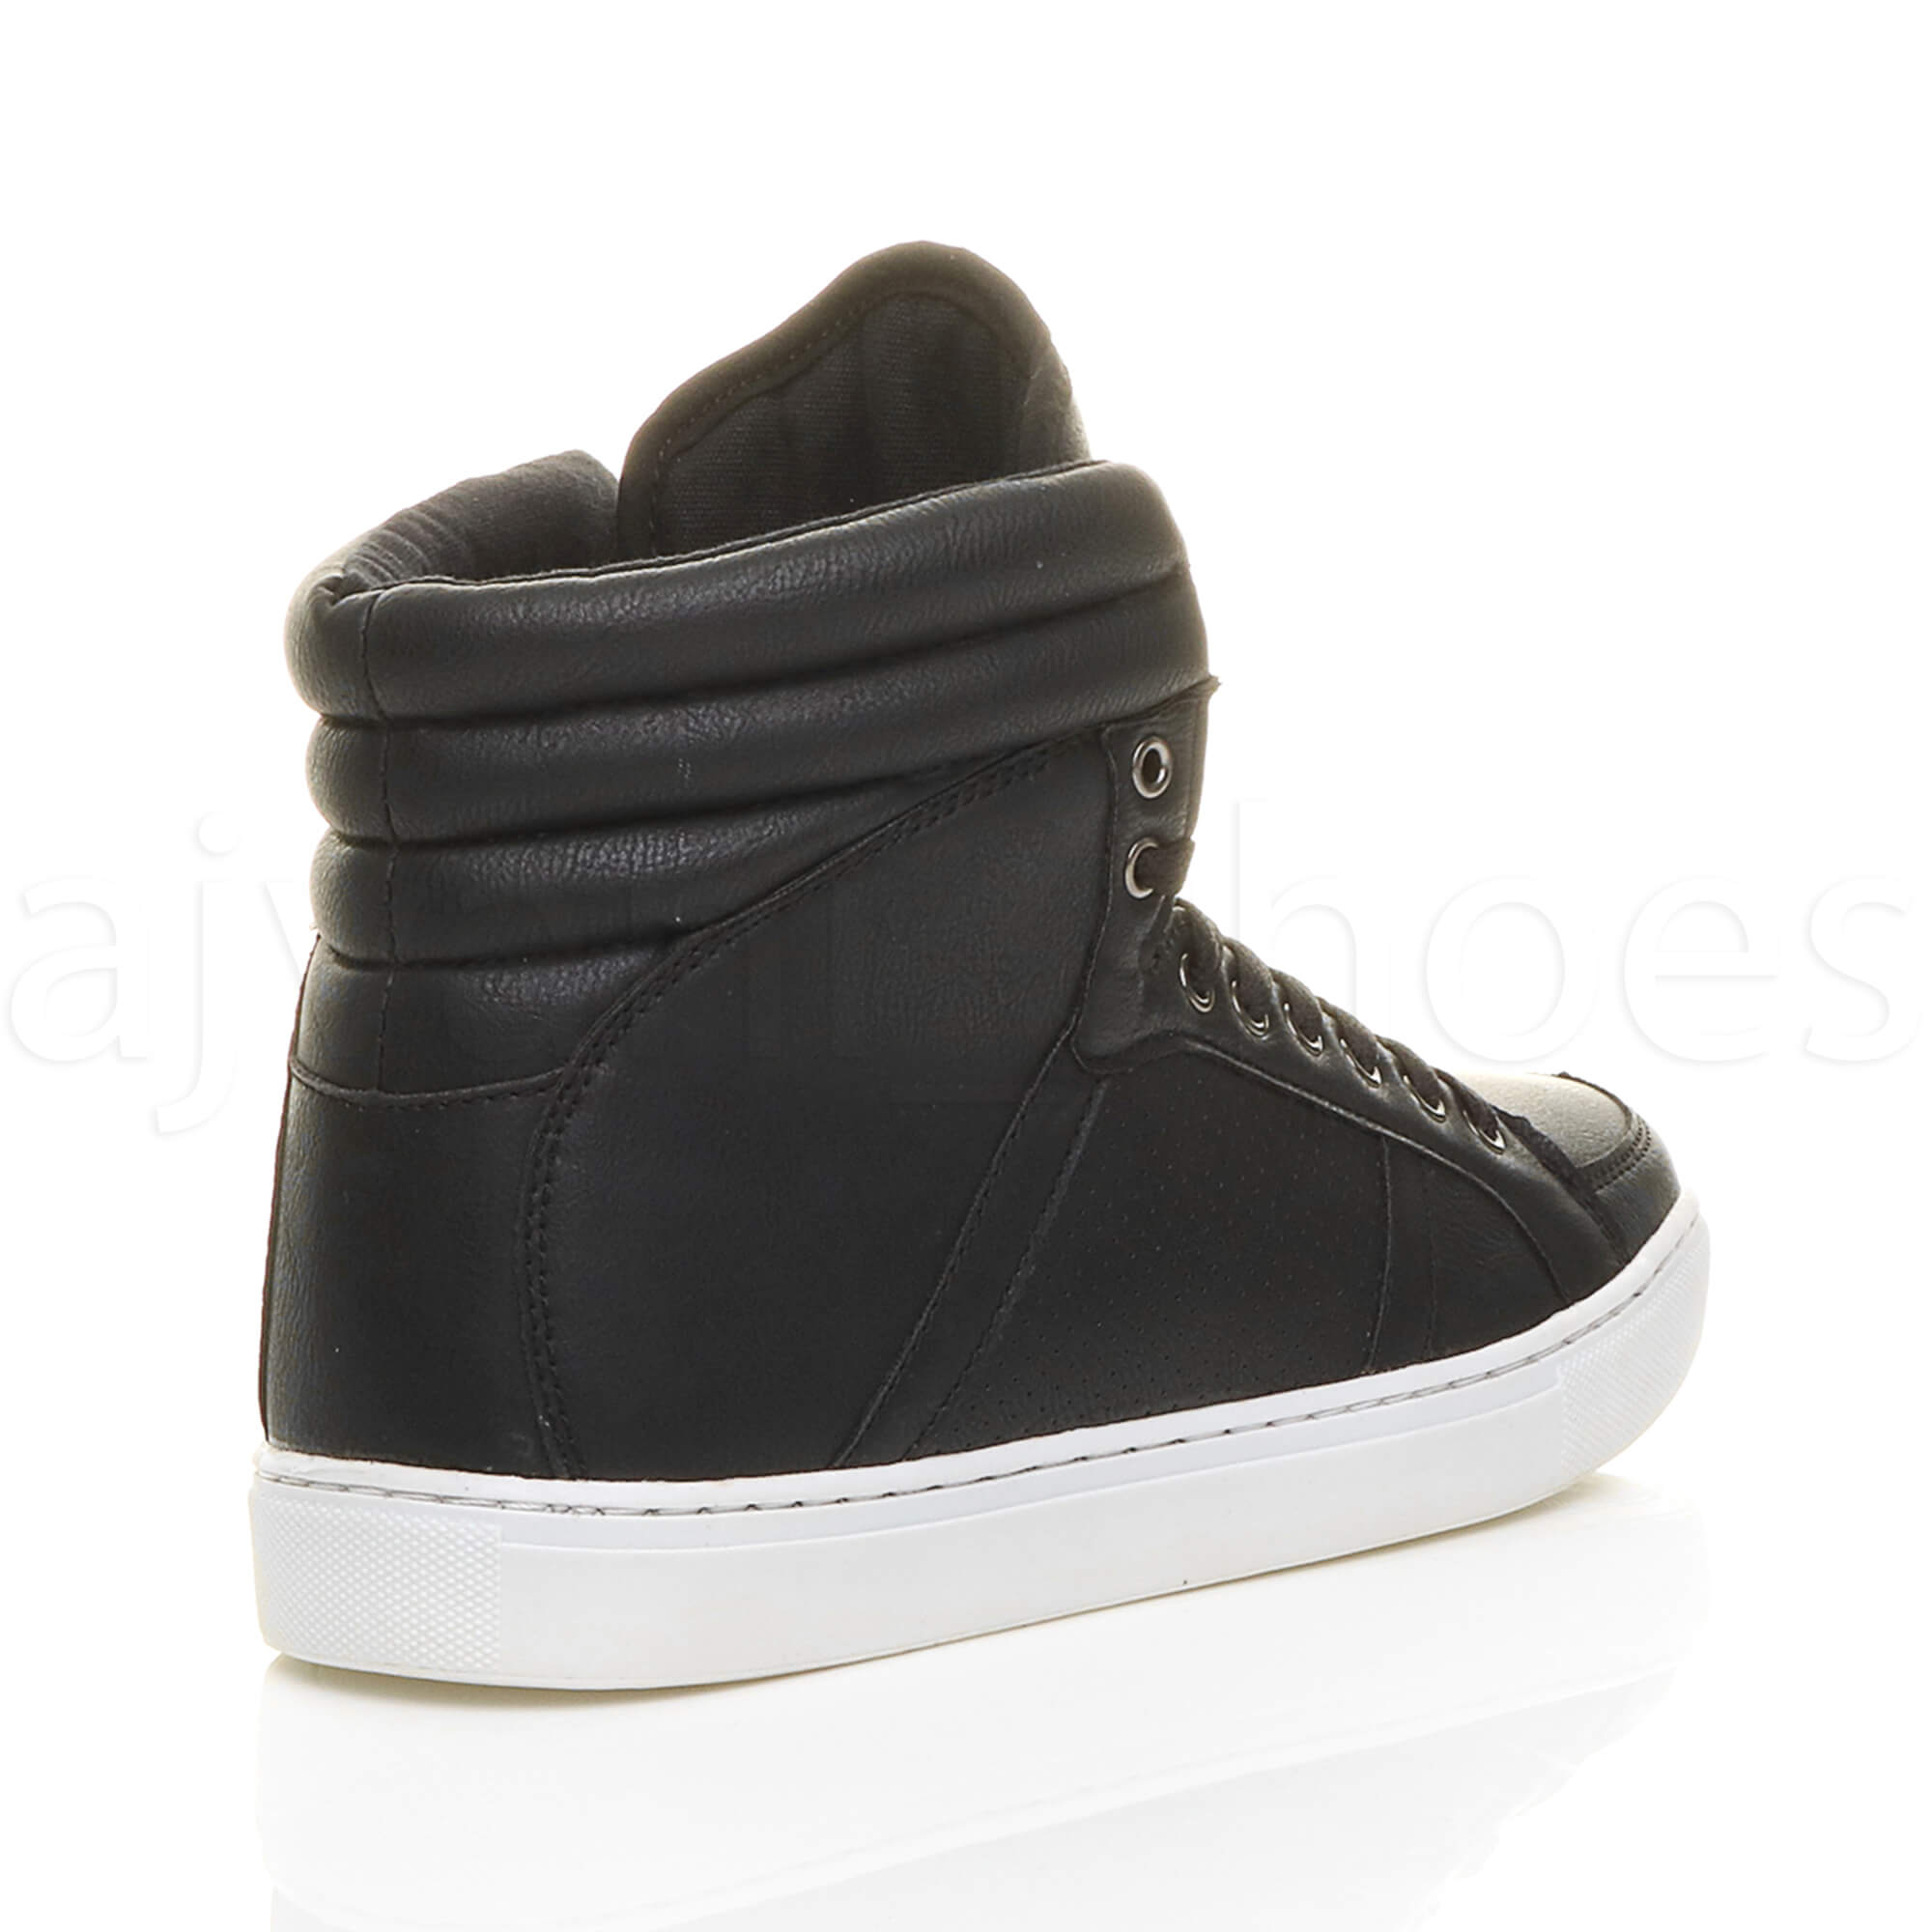 MENS-LACE-UP-CASUAL-FLAT-HI-HIGH-TOP-ANKLE-BOOTS-SHOES-TRAINERS-SNEAKERS-SIZE thumbnail 5